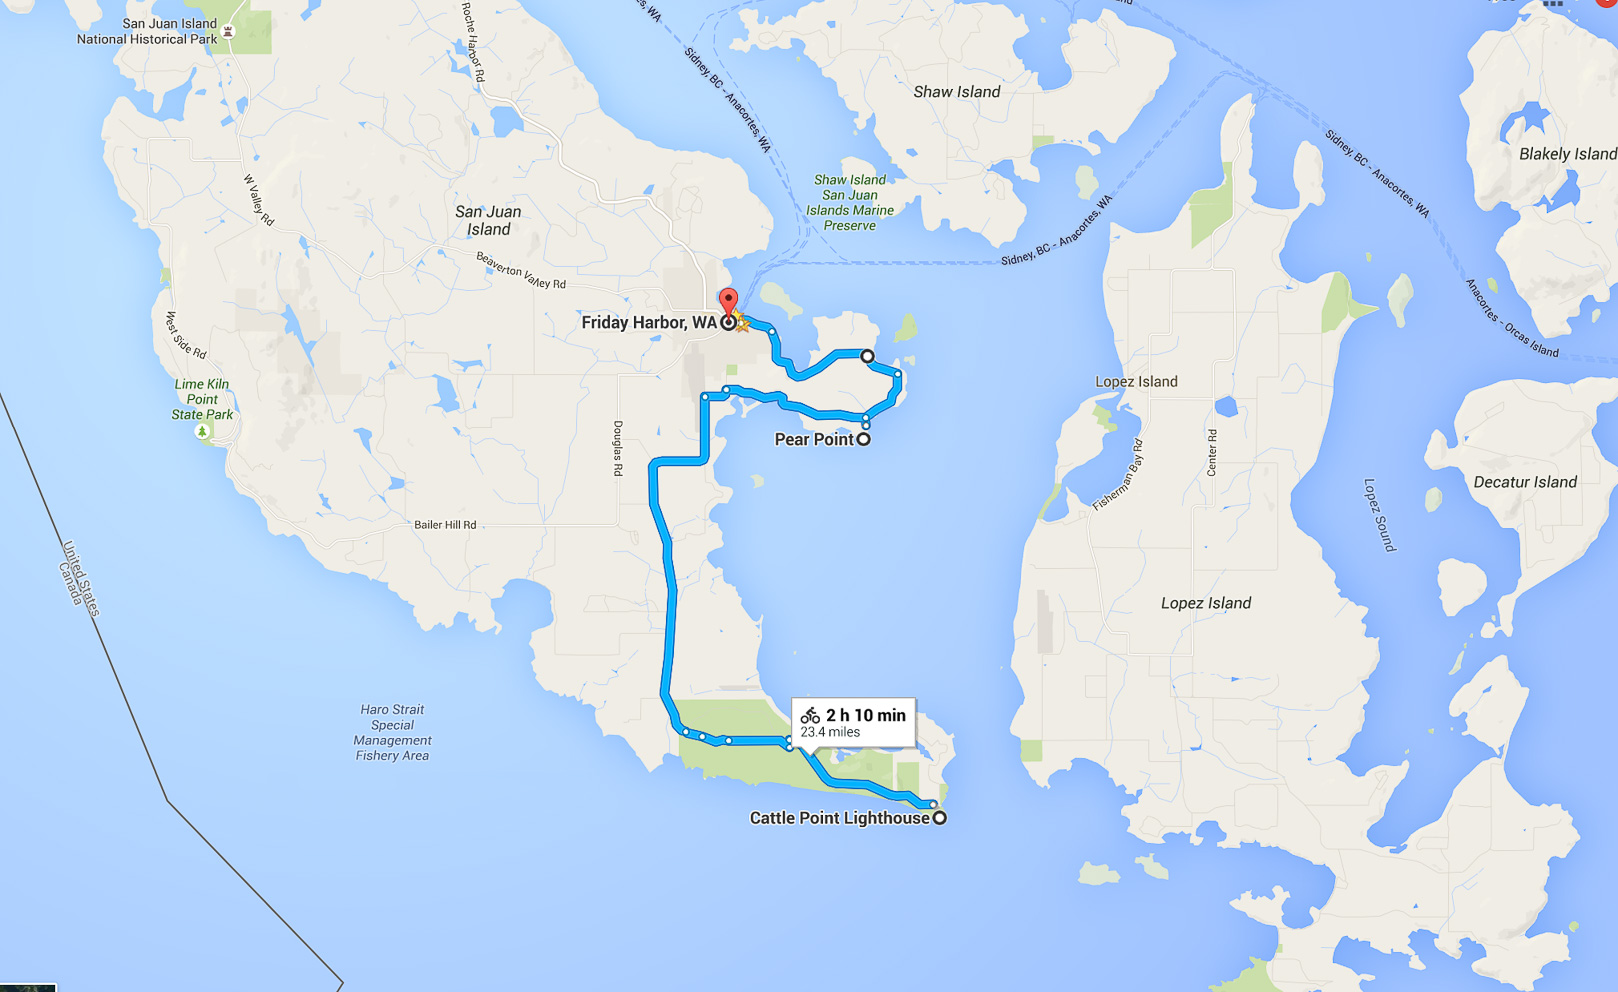 map-san-juan-cattlepoint-pearpoint-fridayharbor-1 San Go Bike Paths Map on scenic route maps, examples of maps, walk path maps, fishing maps, full screen maps, last frontier maps, safehold series maps, classic d&d maps, property line maps, rpg maker vx ace maps, land survey maps, forest service maps, tsingy de bemaraha maps, star gazing maps, prehistoric maps, ad&d maps, bike paths denver metro, war game maps, playground maps,